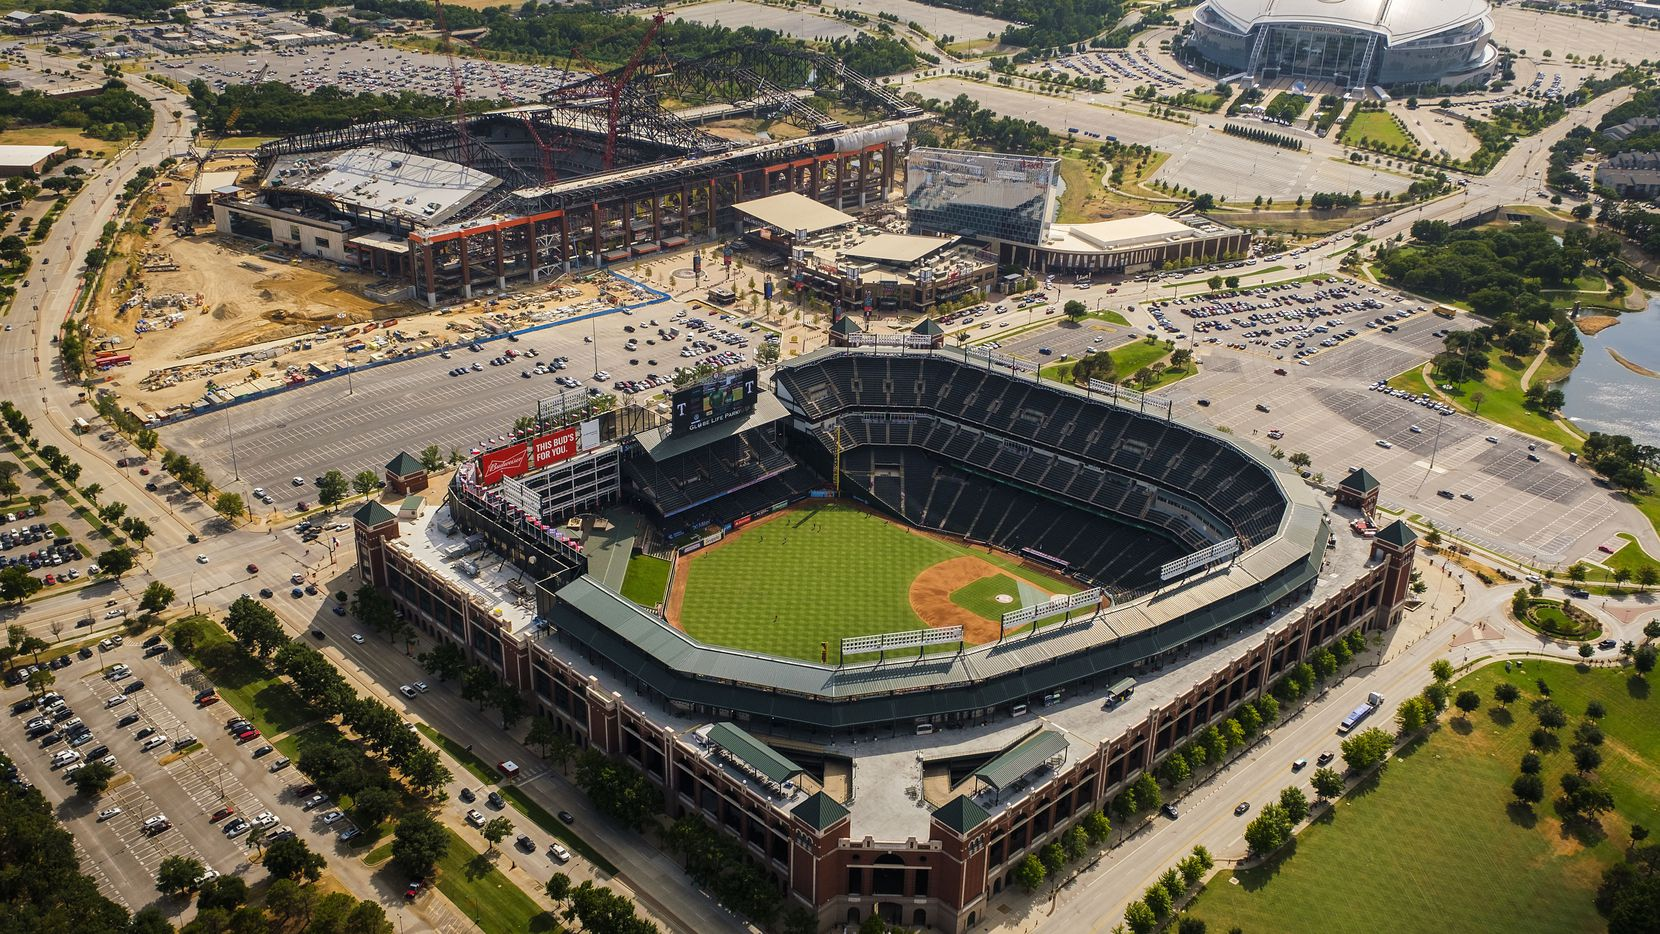 Aerial view of Globe Life Park (bottom), the Texas Live! and Live! by Loews hotel (center), construction of Globe Life Field (left) and AT&T Stadium (top right) last August in Arlington, Texas. The parking lot seen here to the right of Globe Life Park is where the city of Arlington and Loews Hotels & Co. are hoping to build a convention center and hotel. The parking lot to the left of Globe Life Park is where Arlington and the Cordish Companies want to develop a mixed-use/residential project in a public-private partnership.